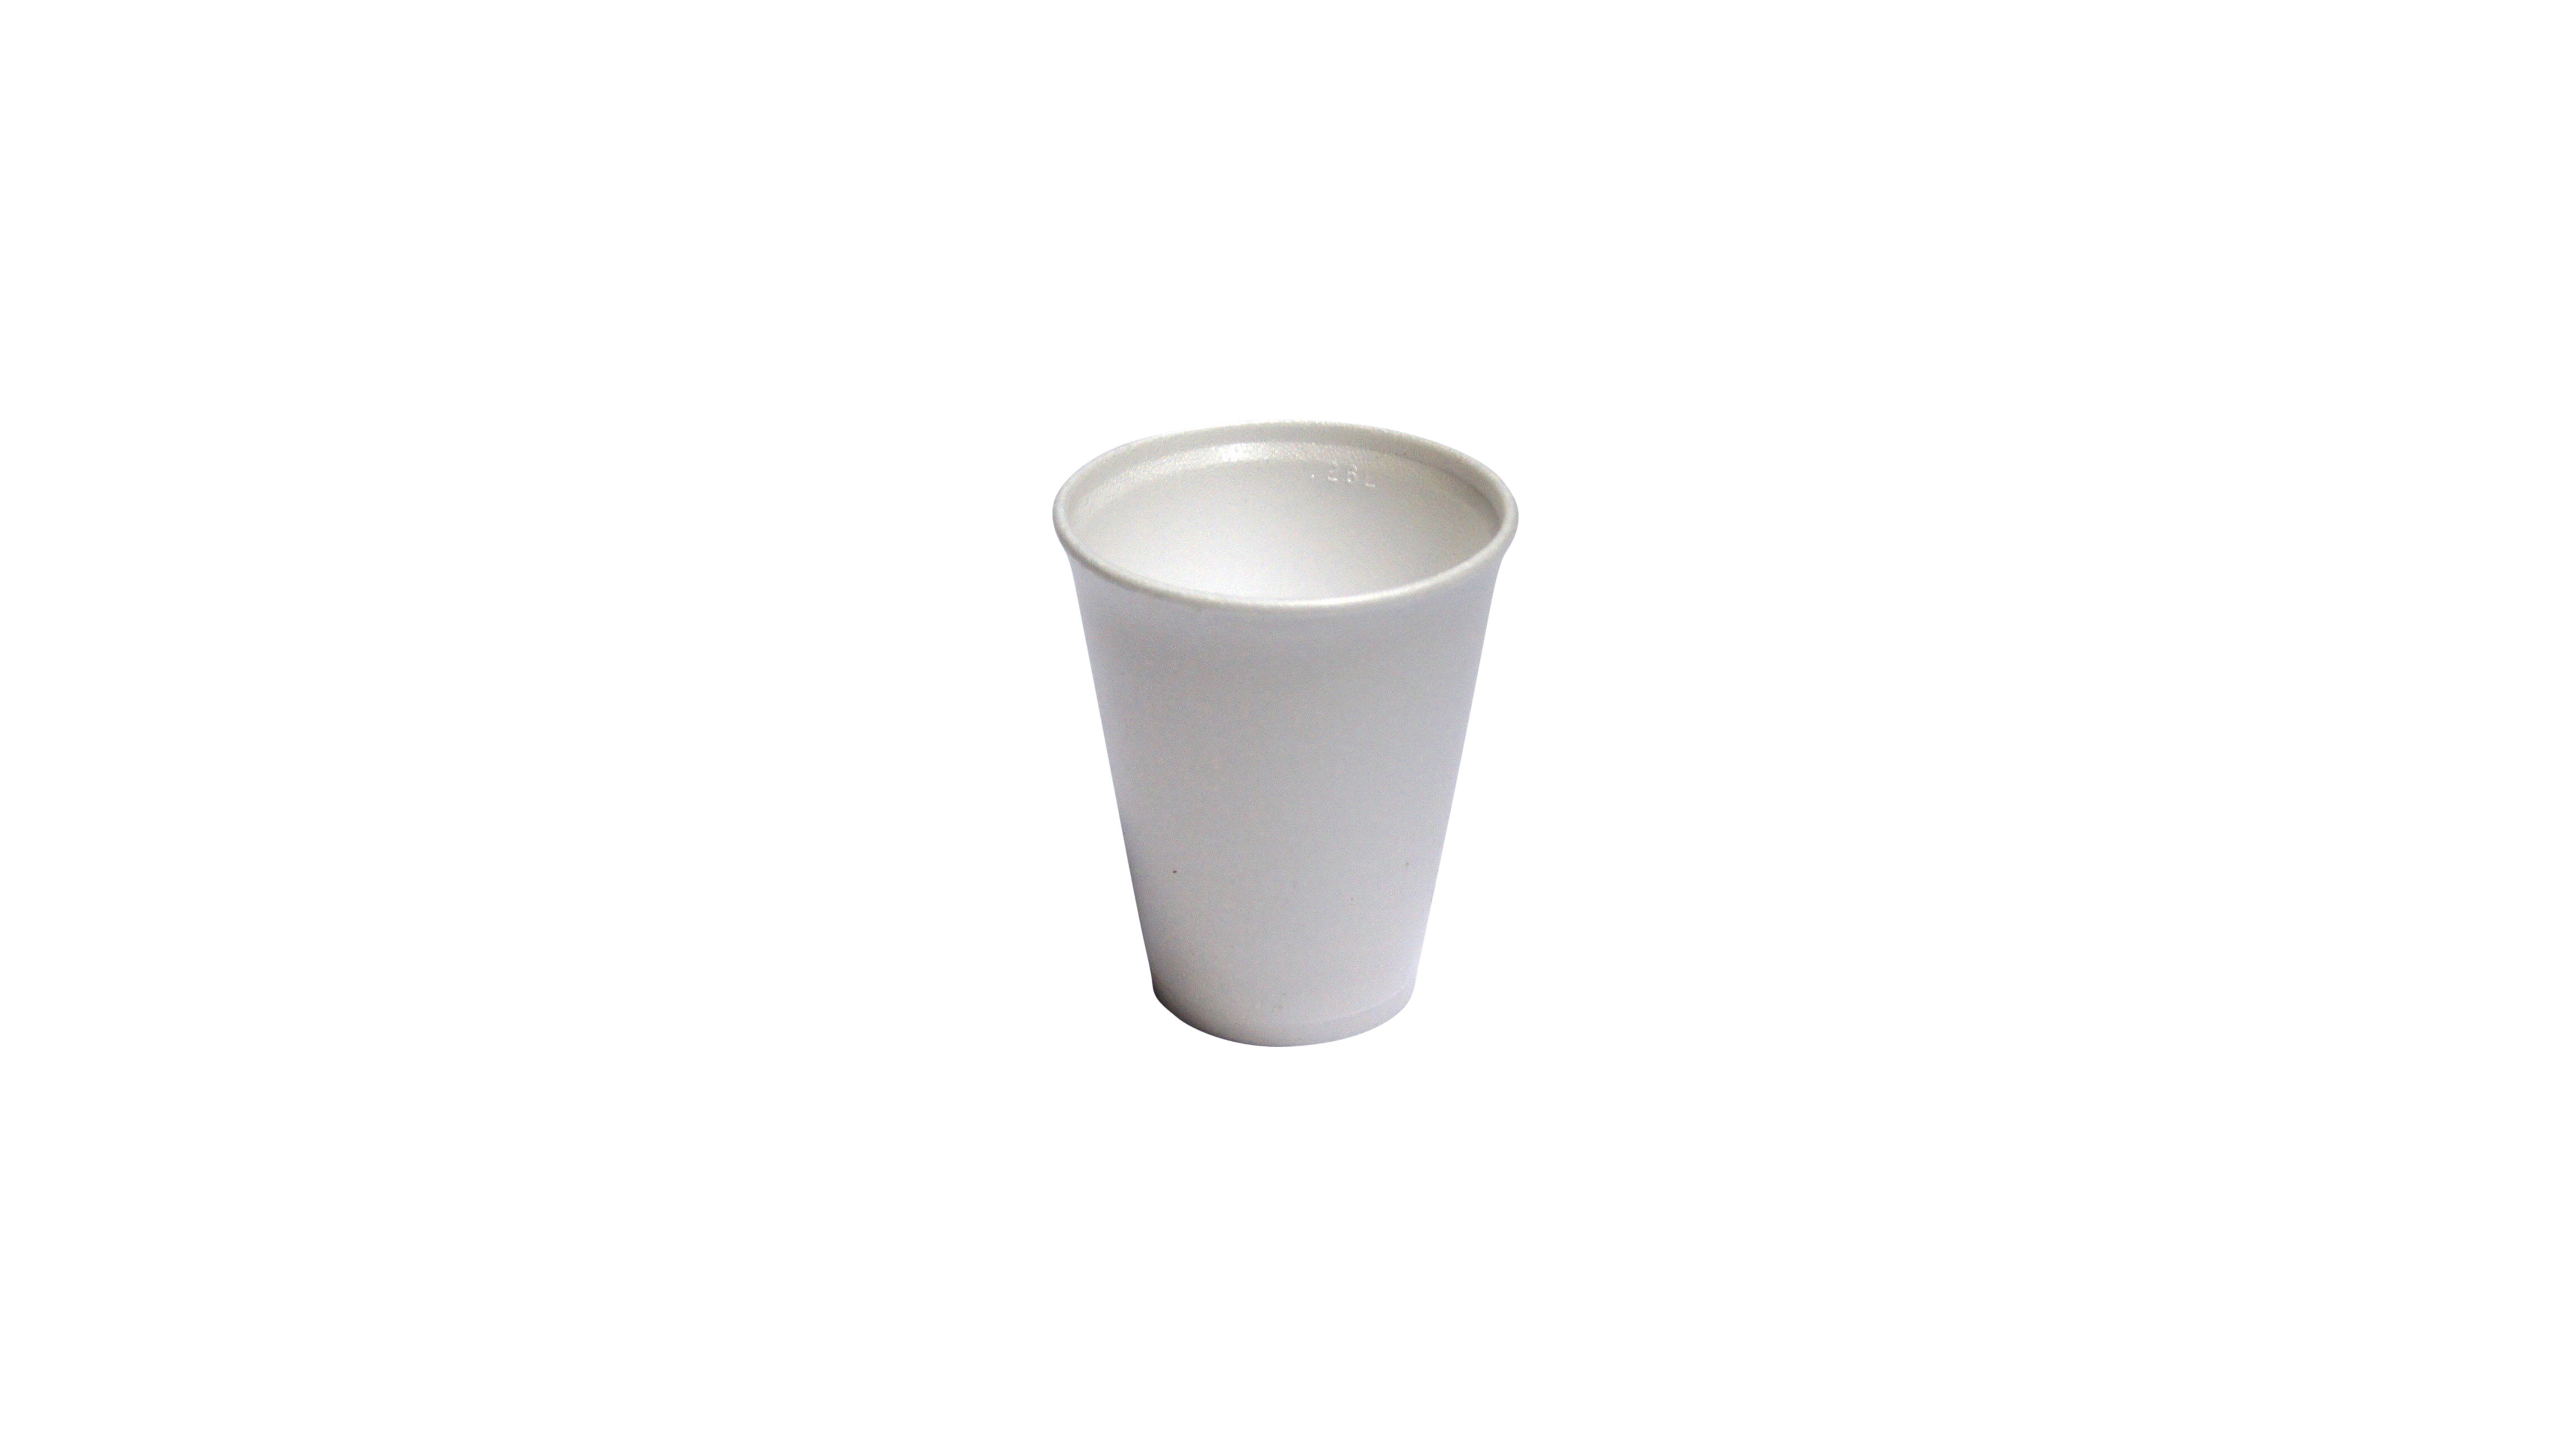 Site Equipment 10 floz Polystyrene Foam Drinking Cups (Pack of 1000)